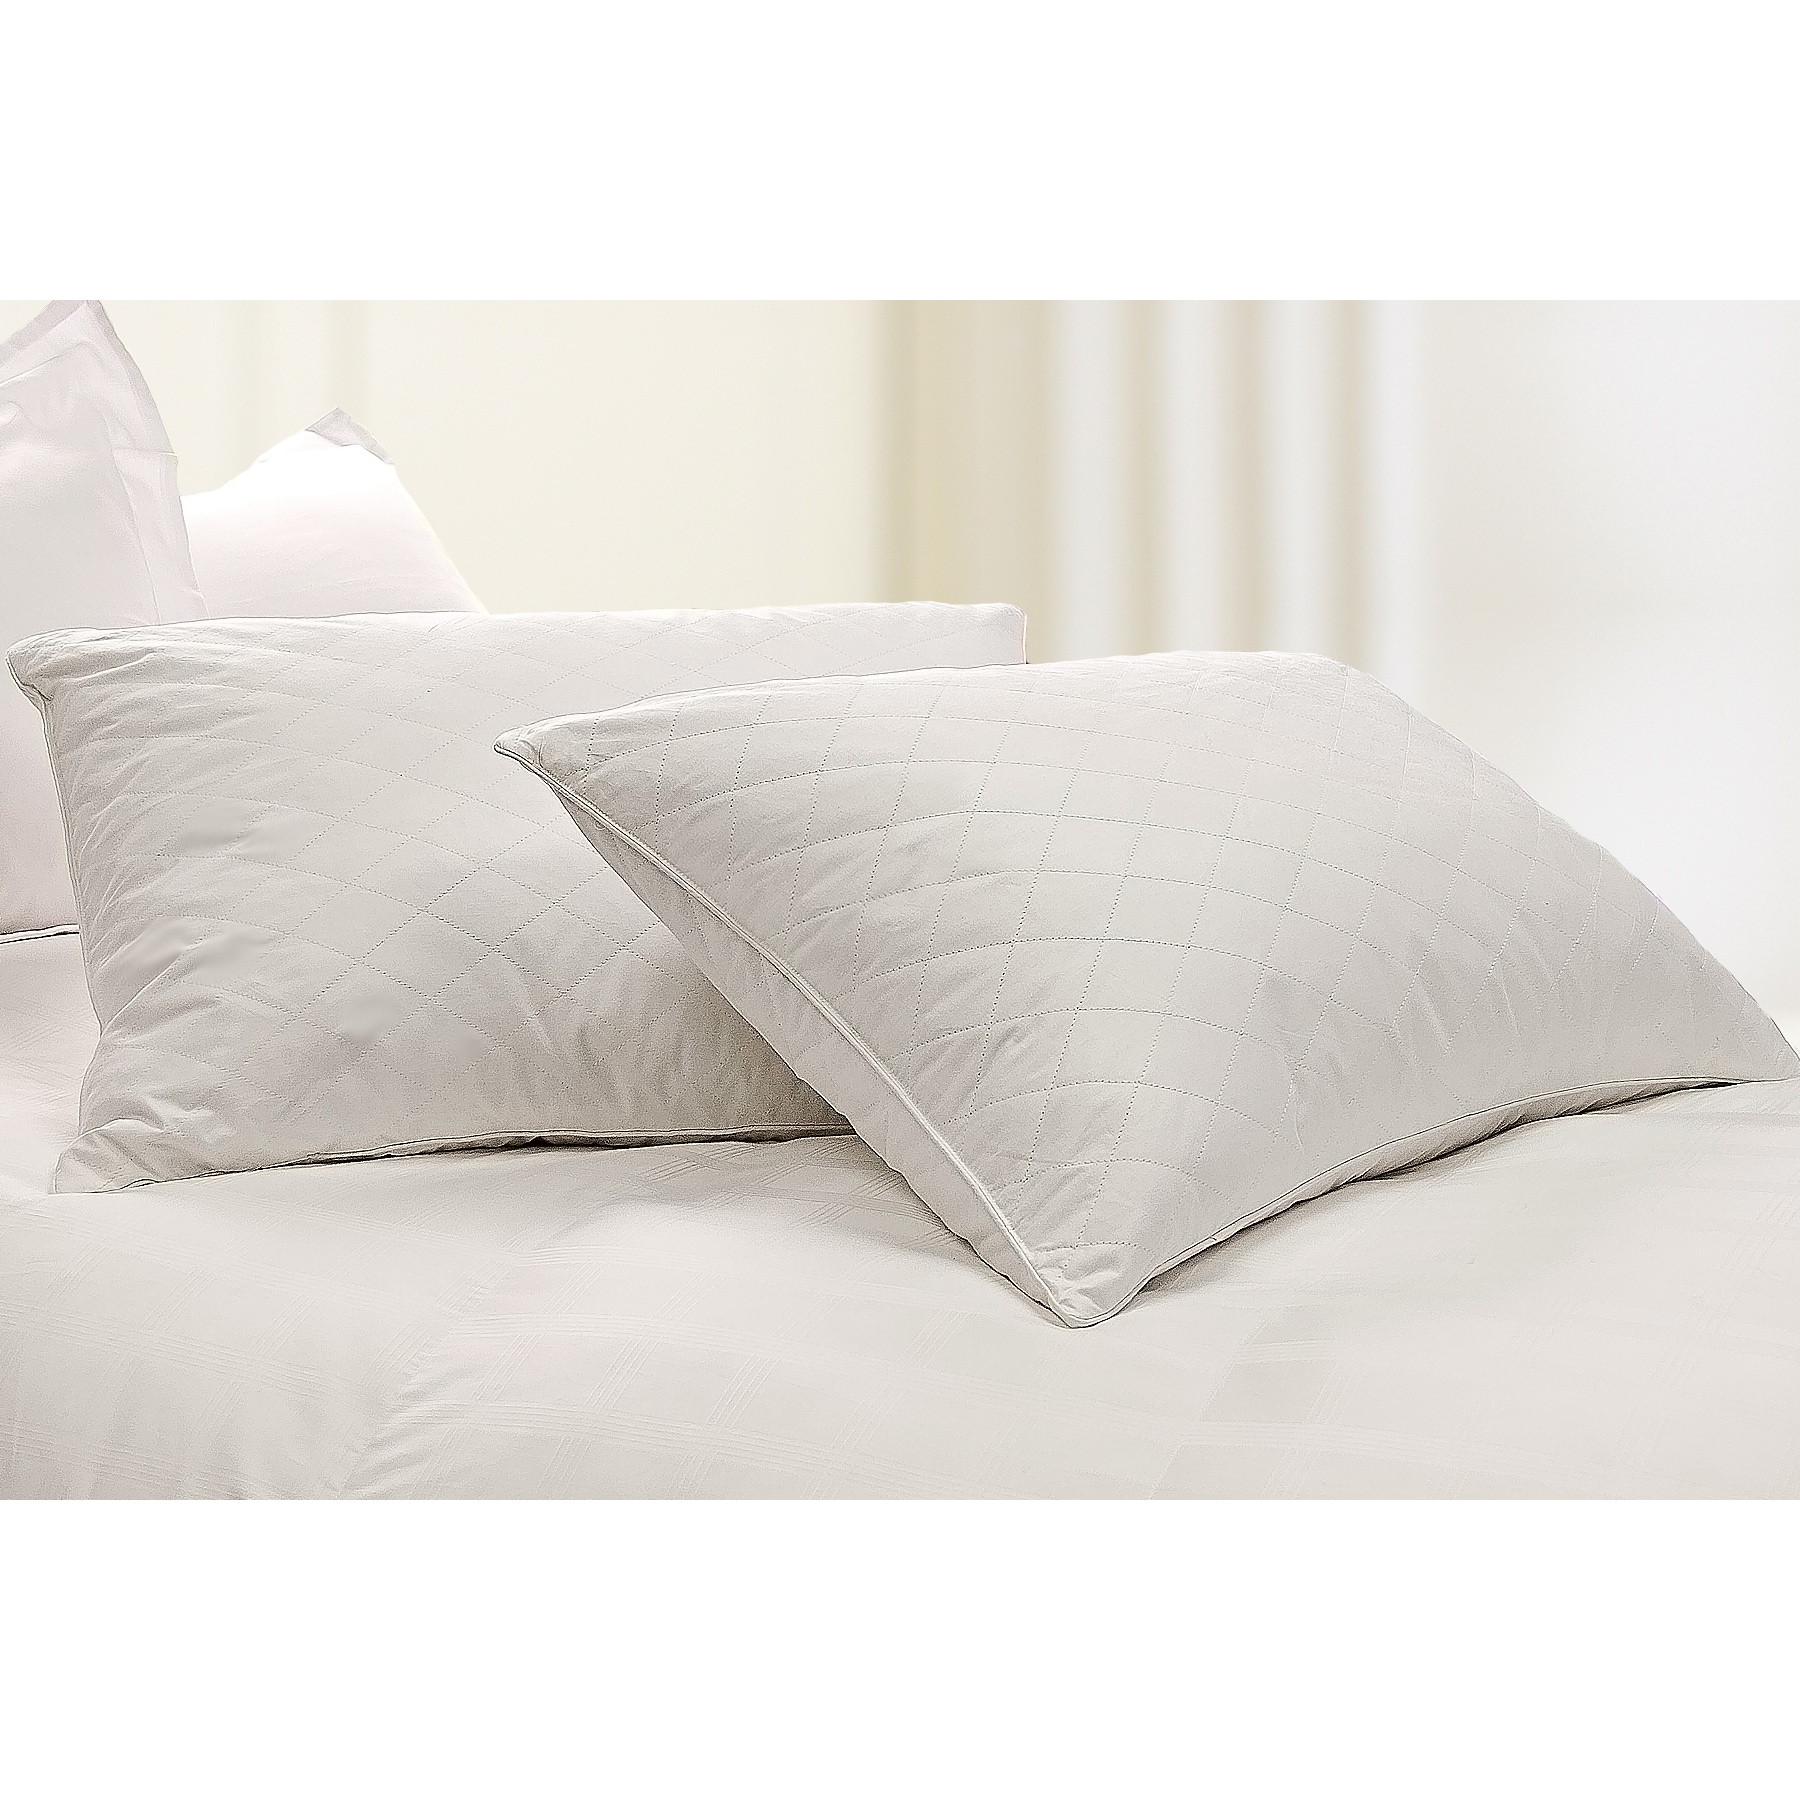 Quilted 233 Thread Count Jumbo-size Natural Feather Pillows (Set of 2) at Sears.com